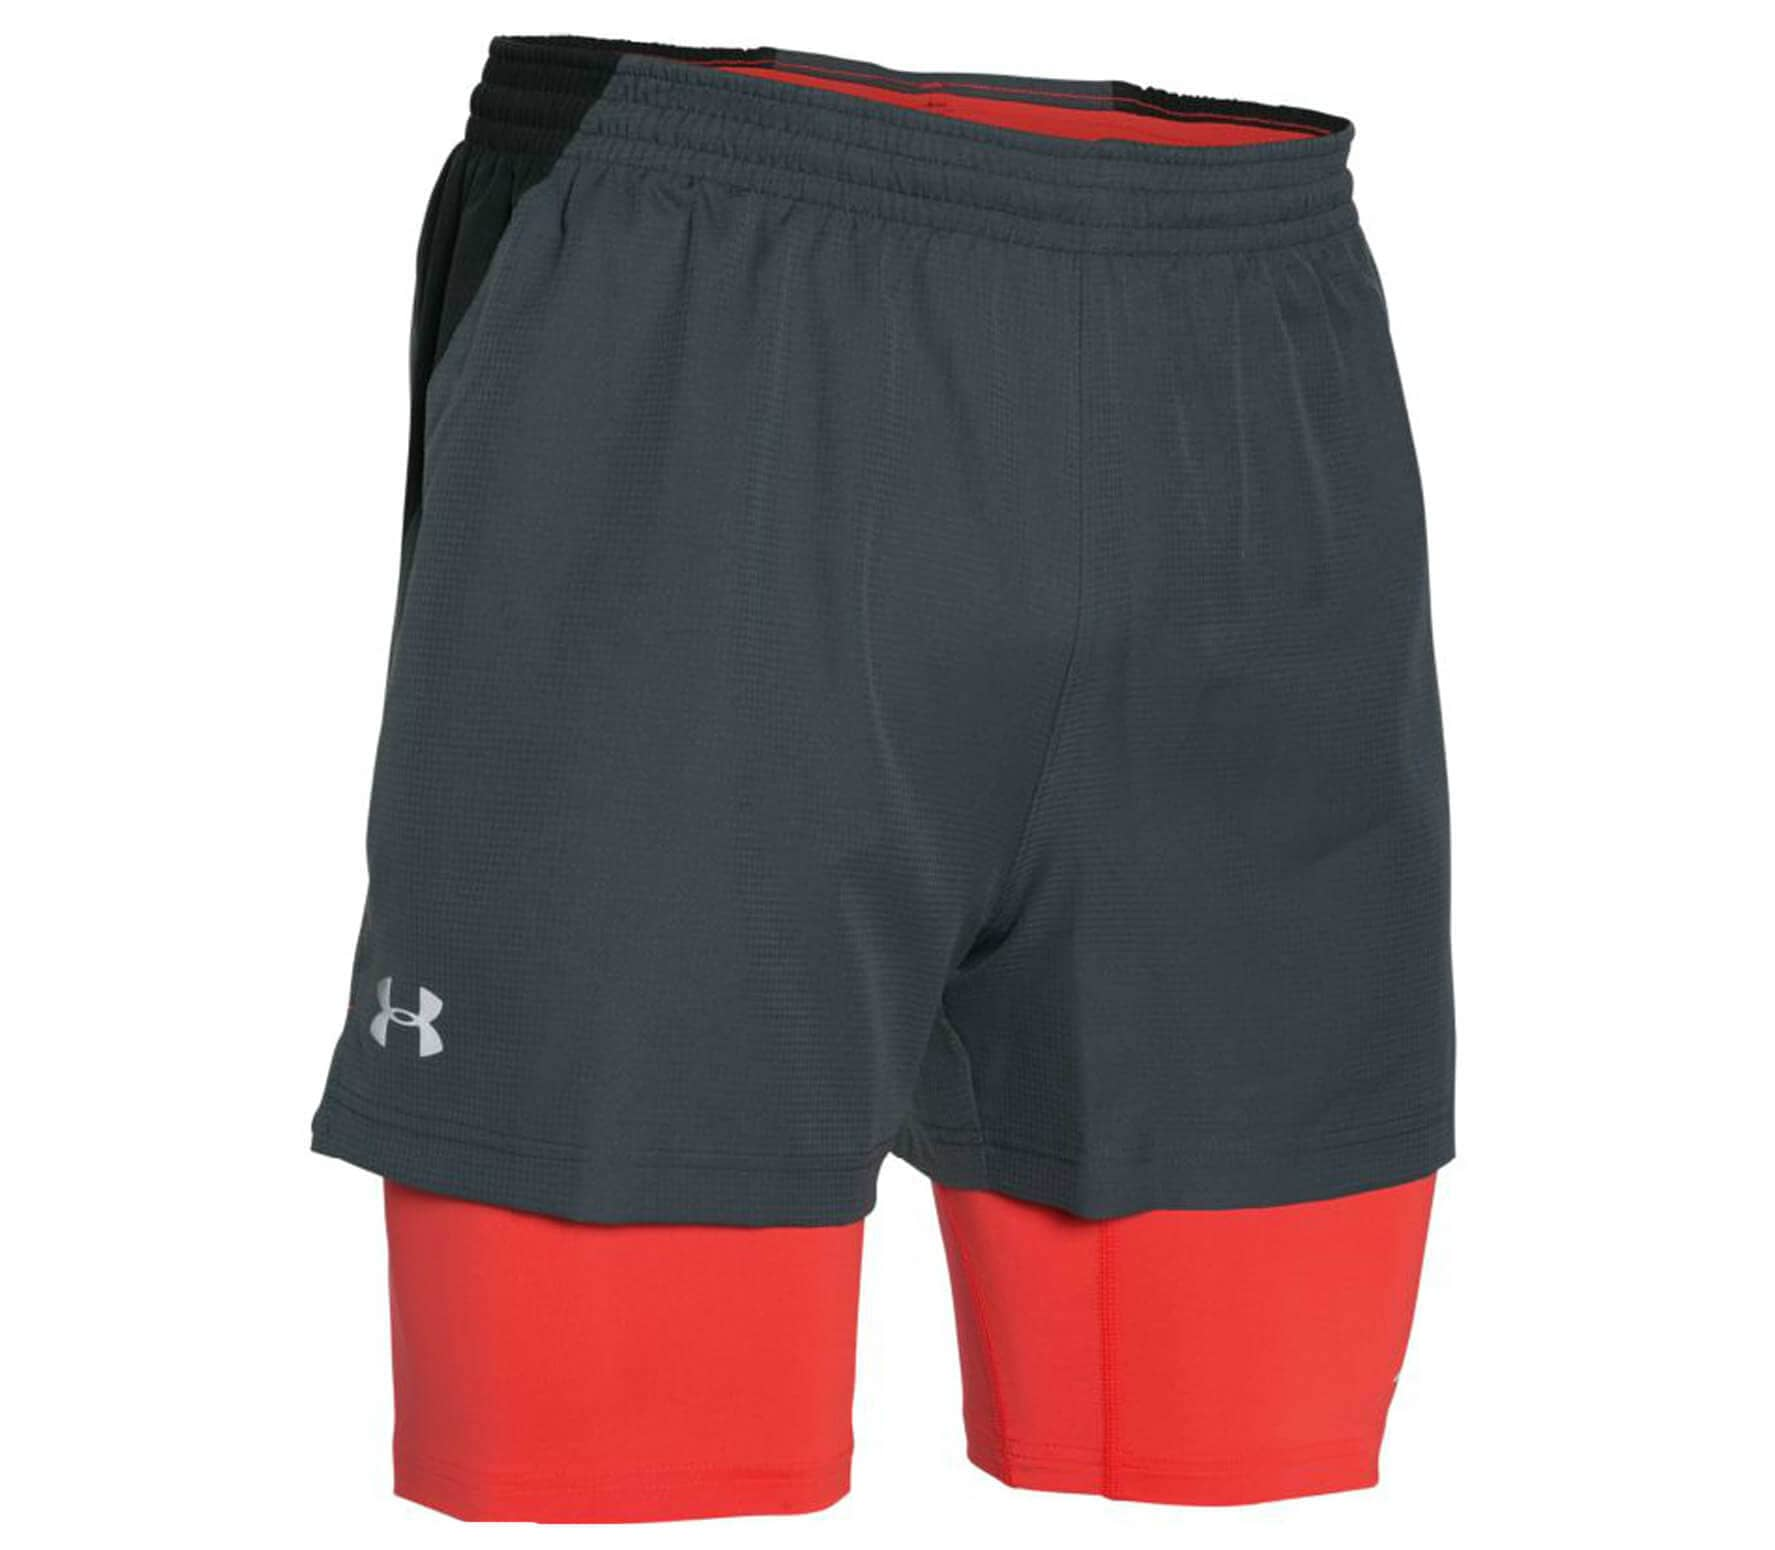 4e1e03592a0bc Under Armour Launch Racer 2 in 1 men's running shorts Men - buy it ...